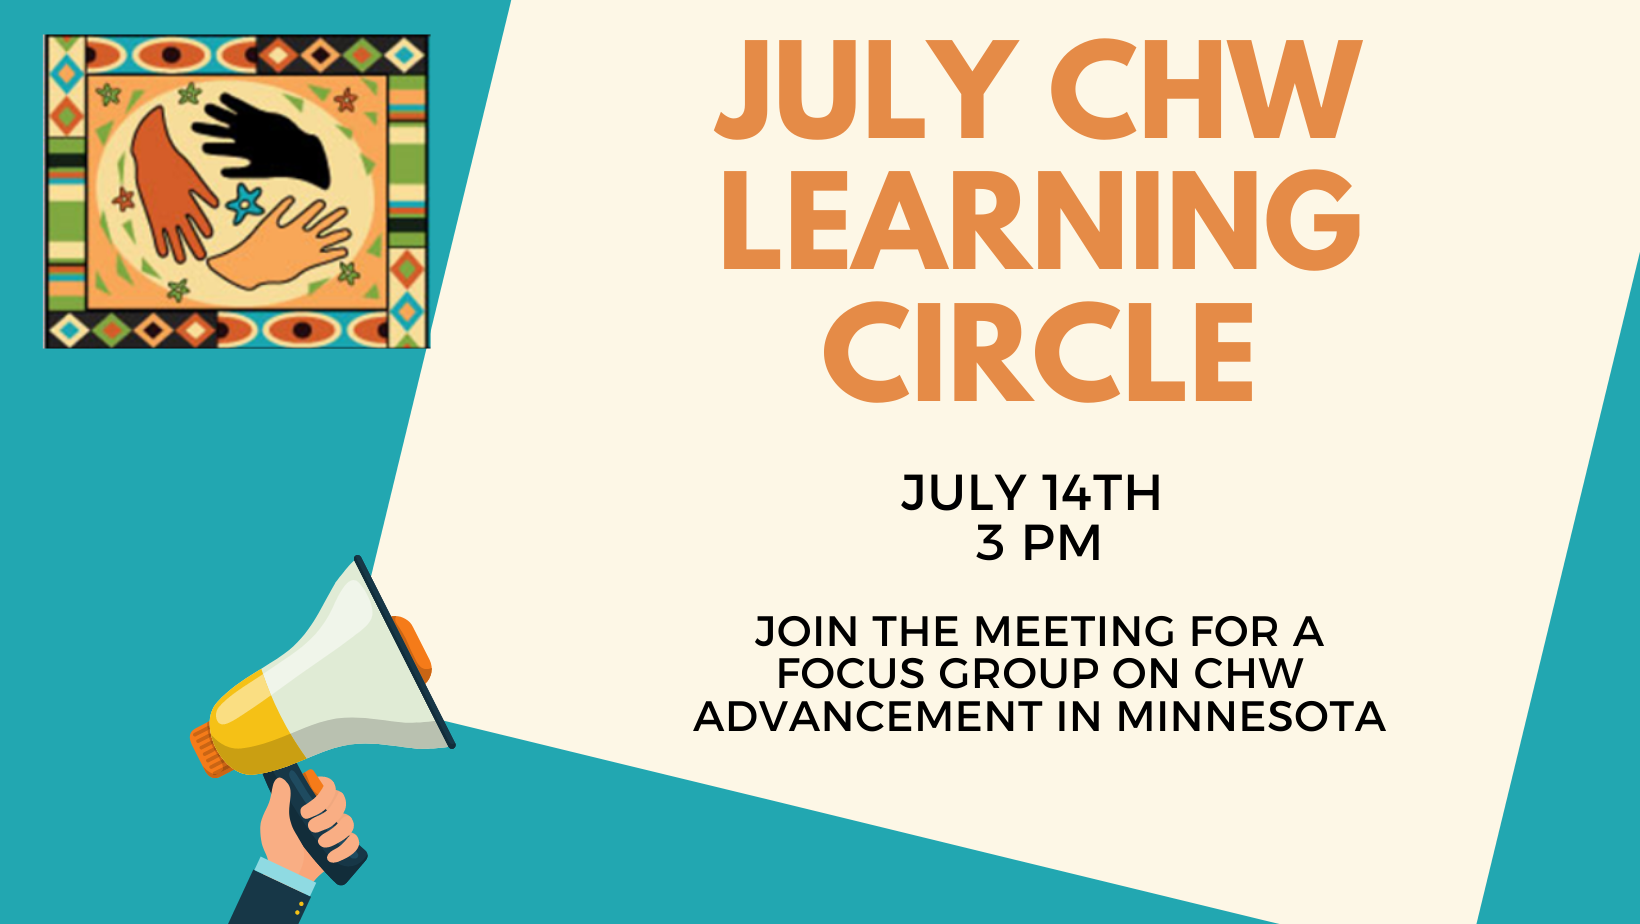 July CHW Learning Circle